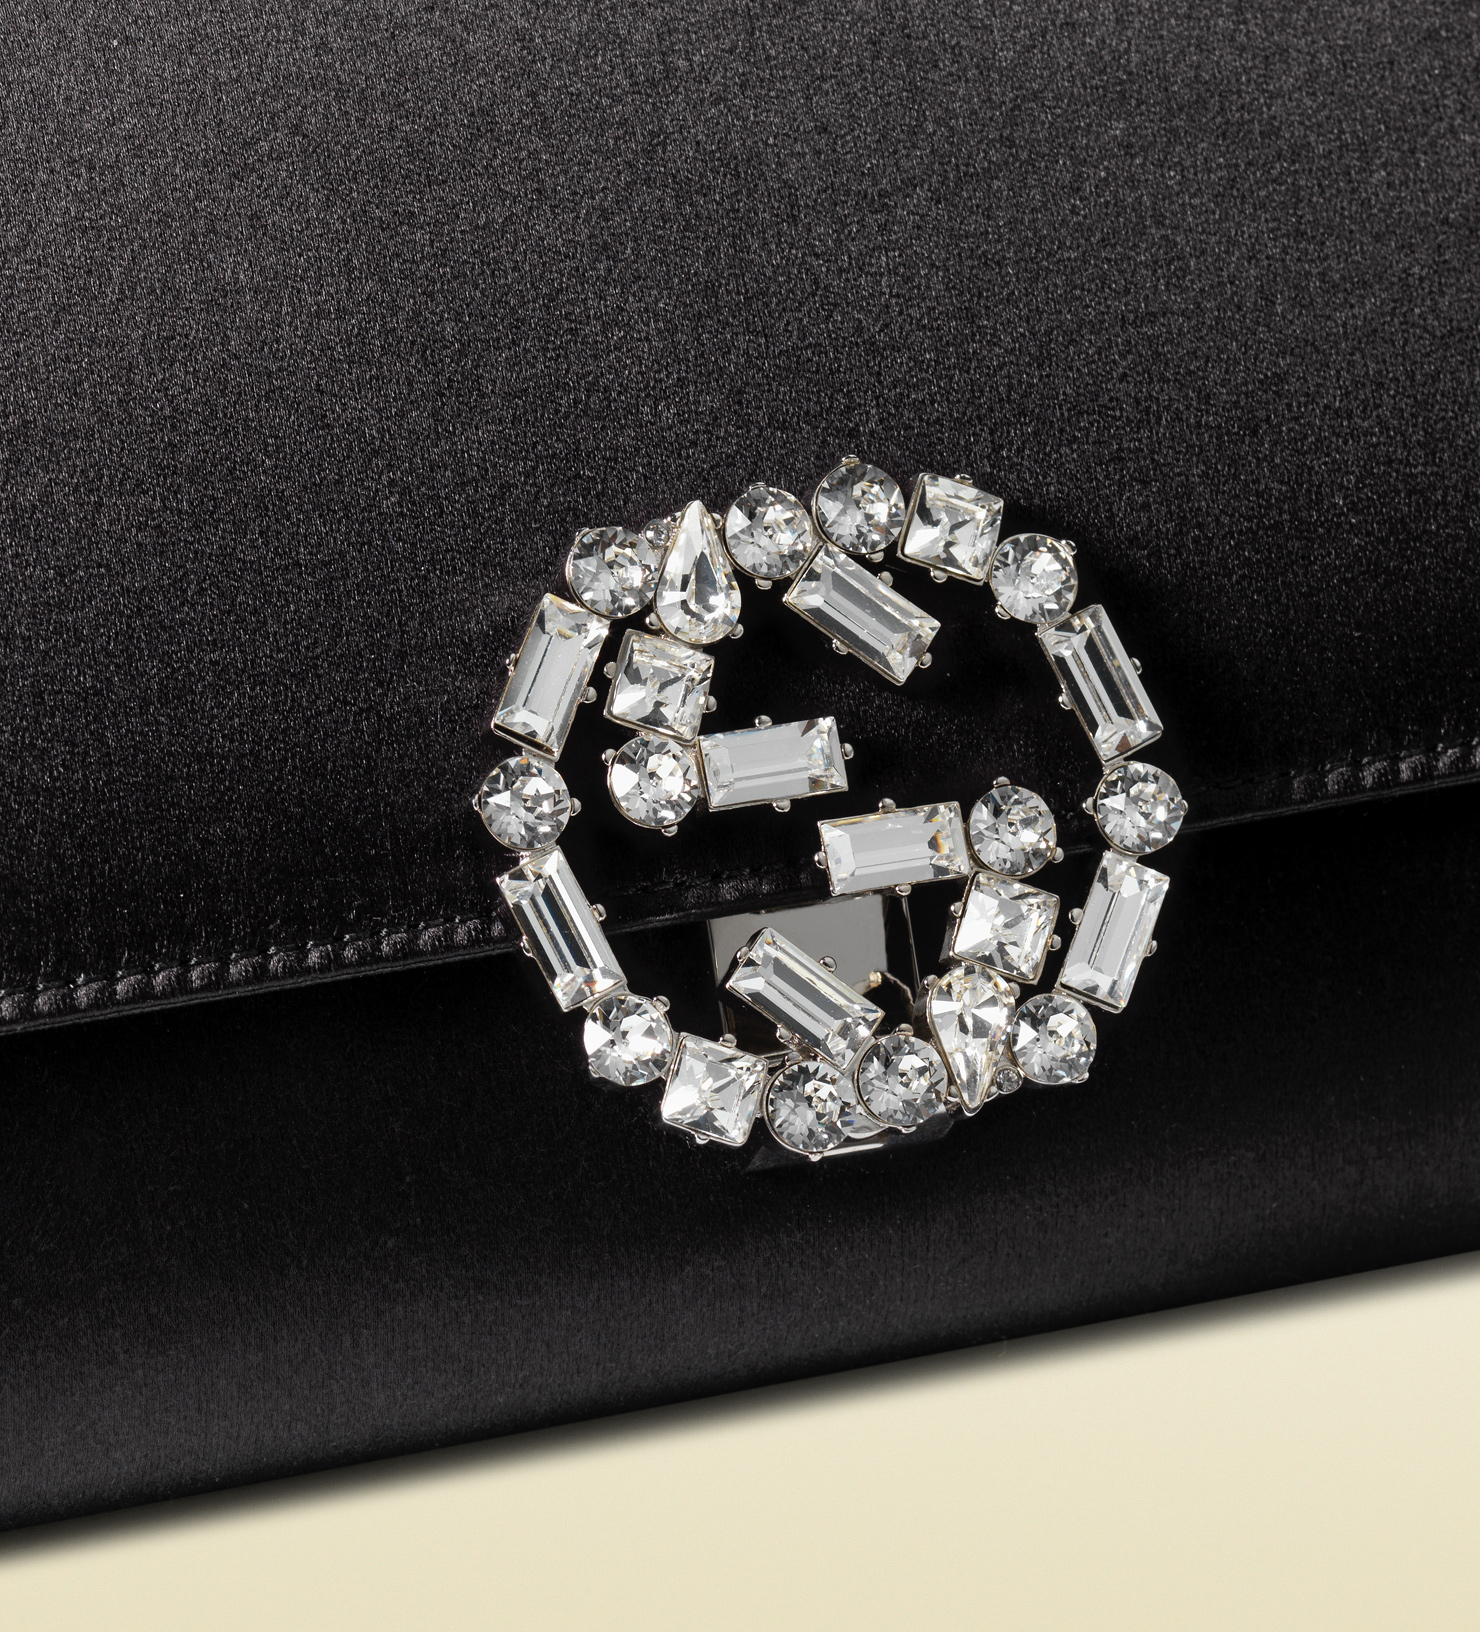 d644ded3433 Lyst - Gucci Broadway Suede Clutch With Crystal Closure in Black